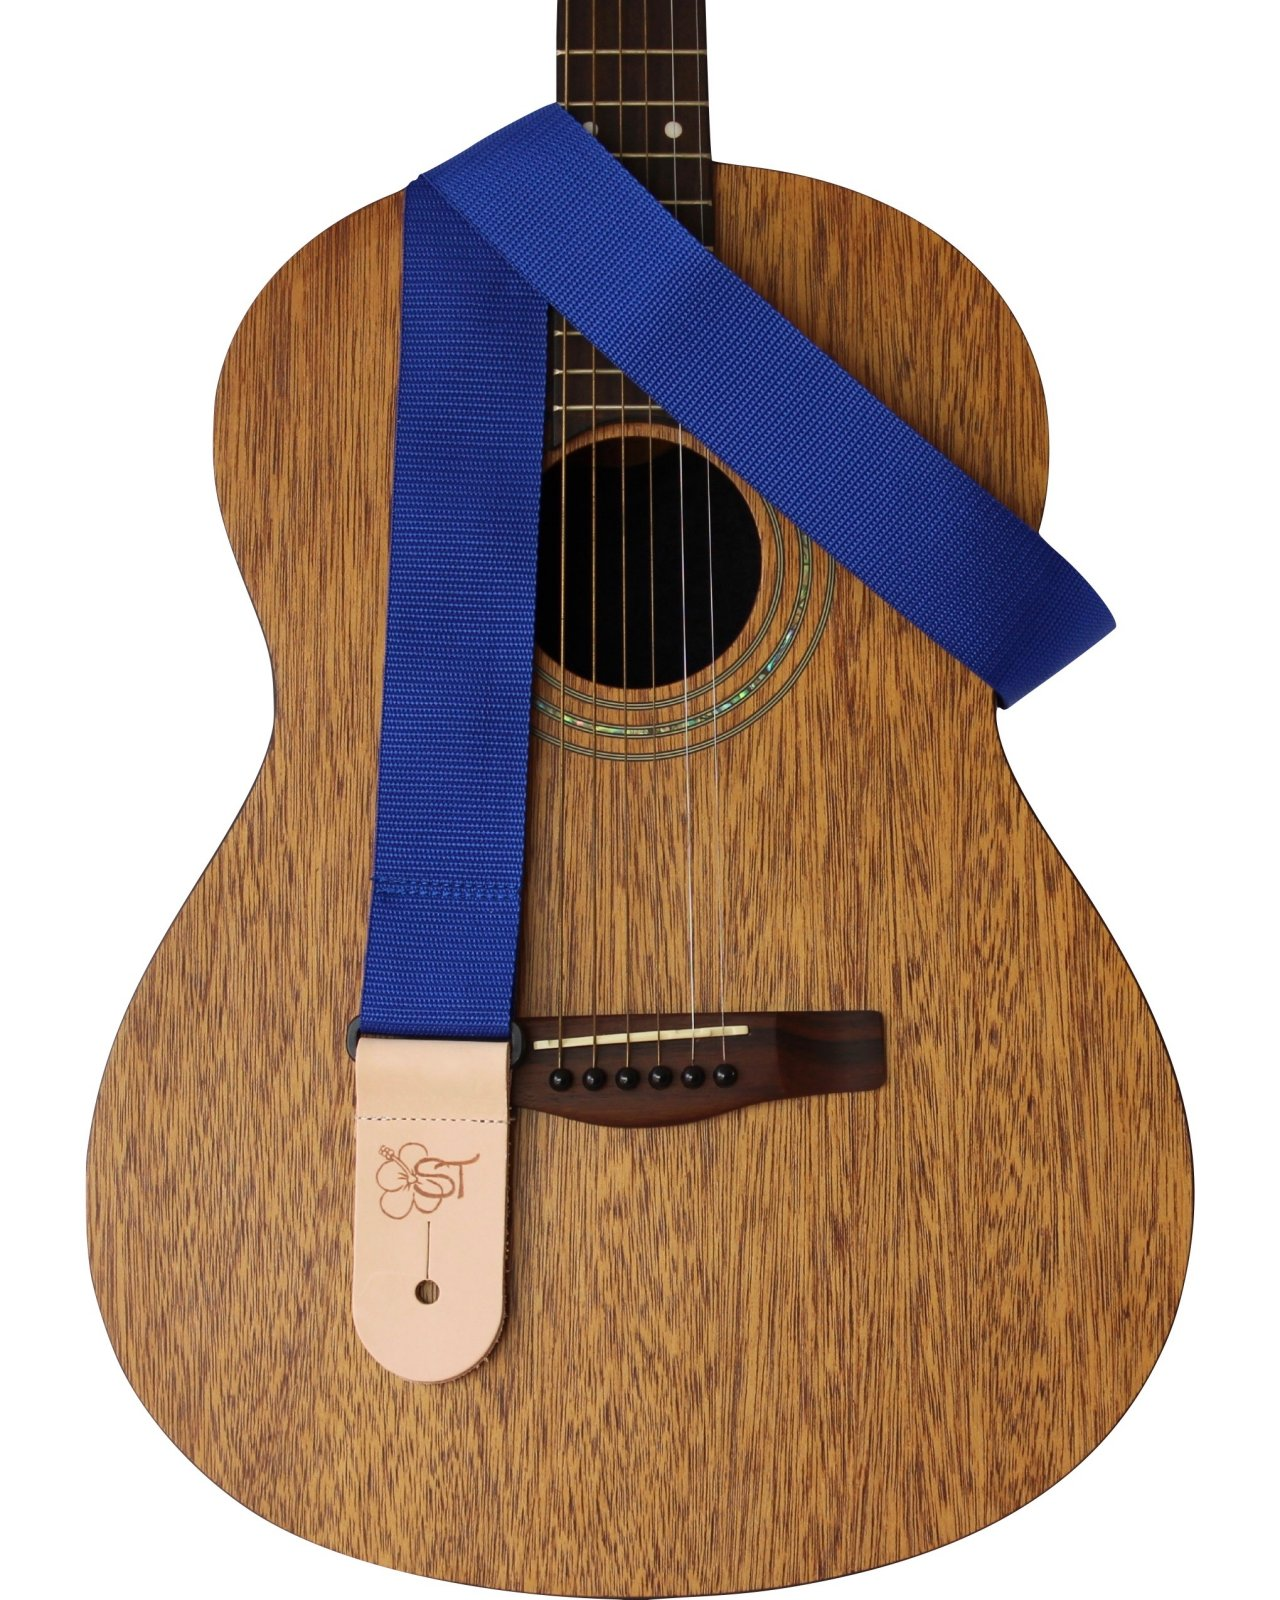 Sherrin's Threads 2 Guitar Strap w/Leather Ends - Blue - Made in USA